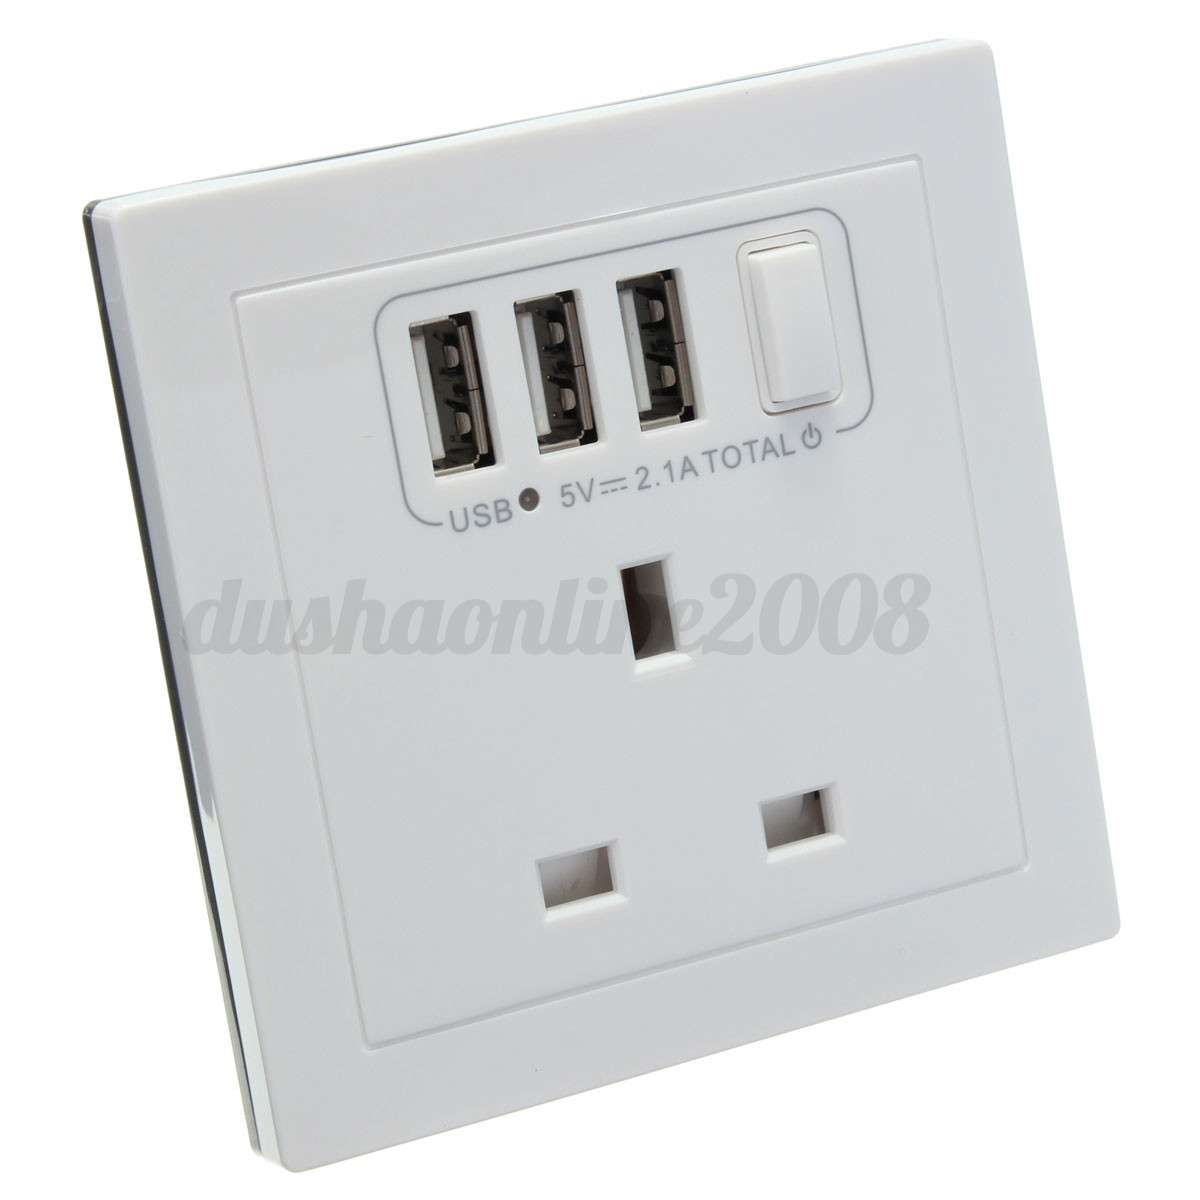 Wall Plug Light Switch : UK Universal Plug USB Outlet Wall Electrical Light Switch Socket F TV Faceplate eBay